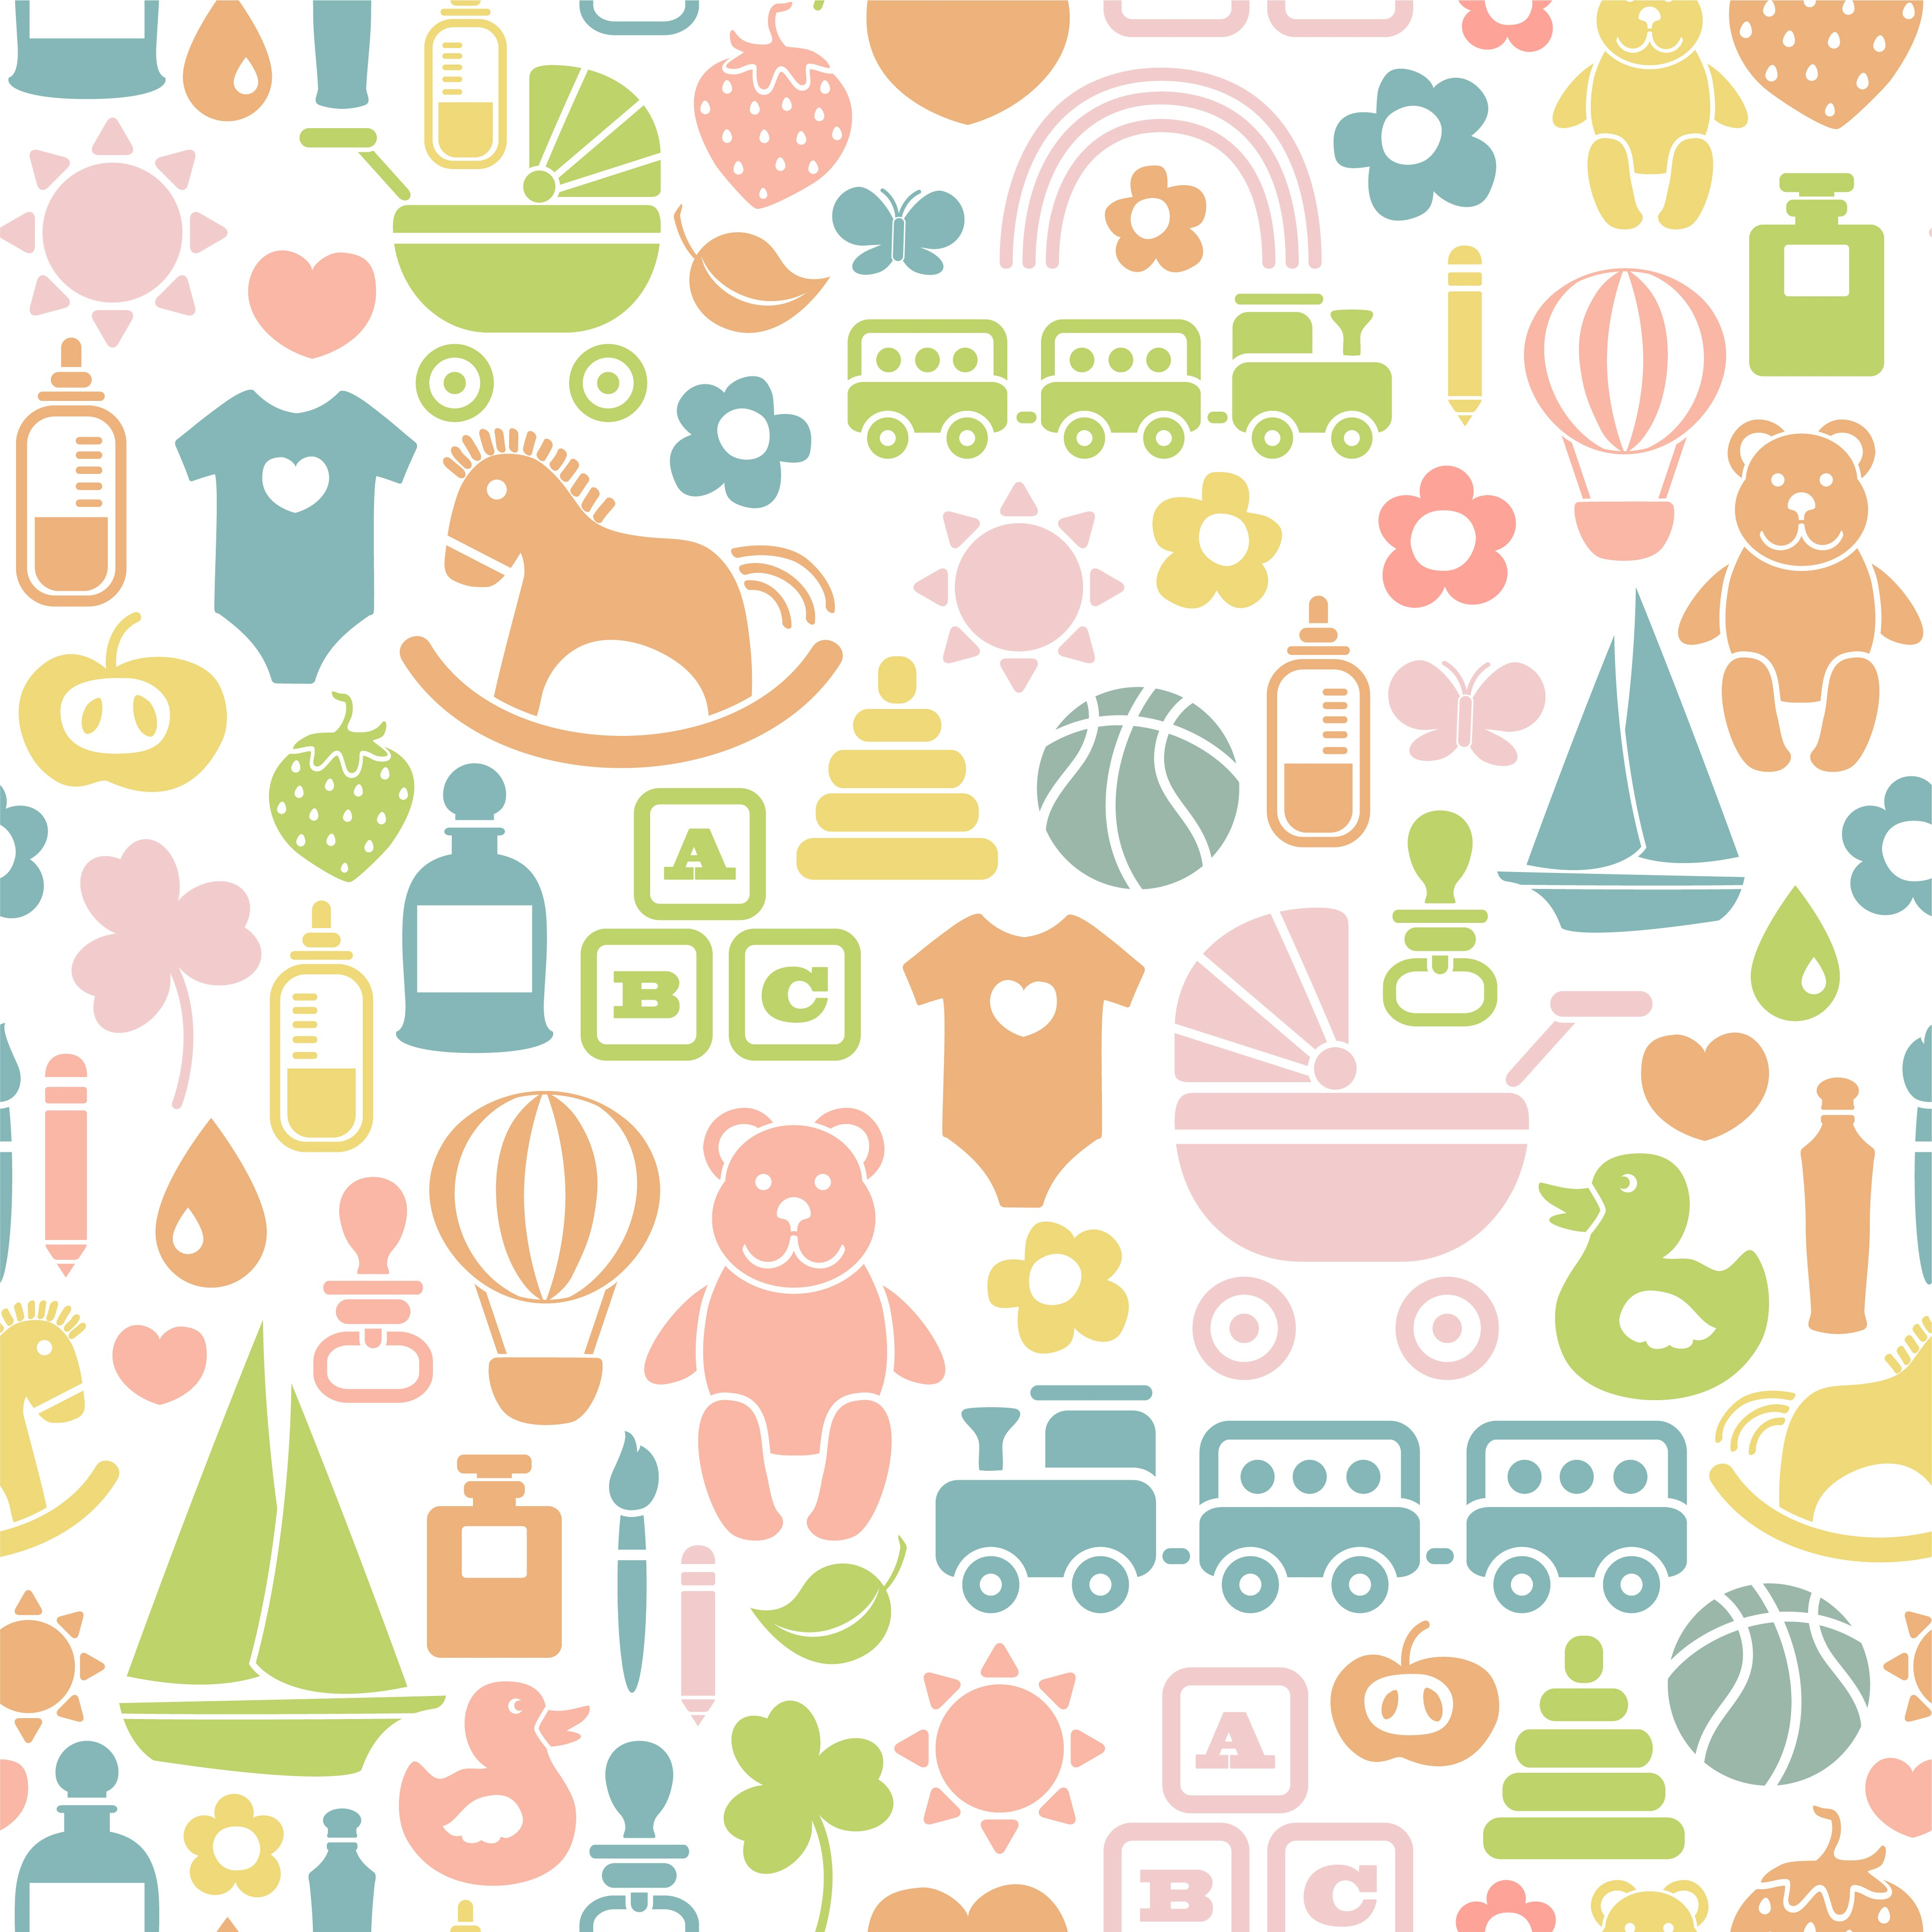 children icons pattern 3 INFANTIL